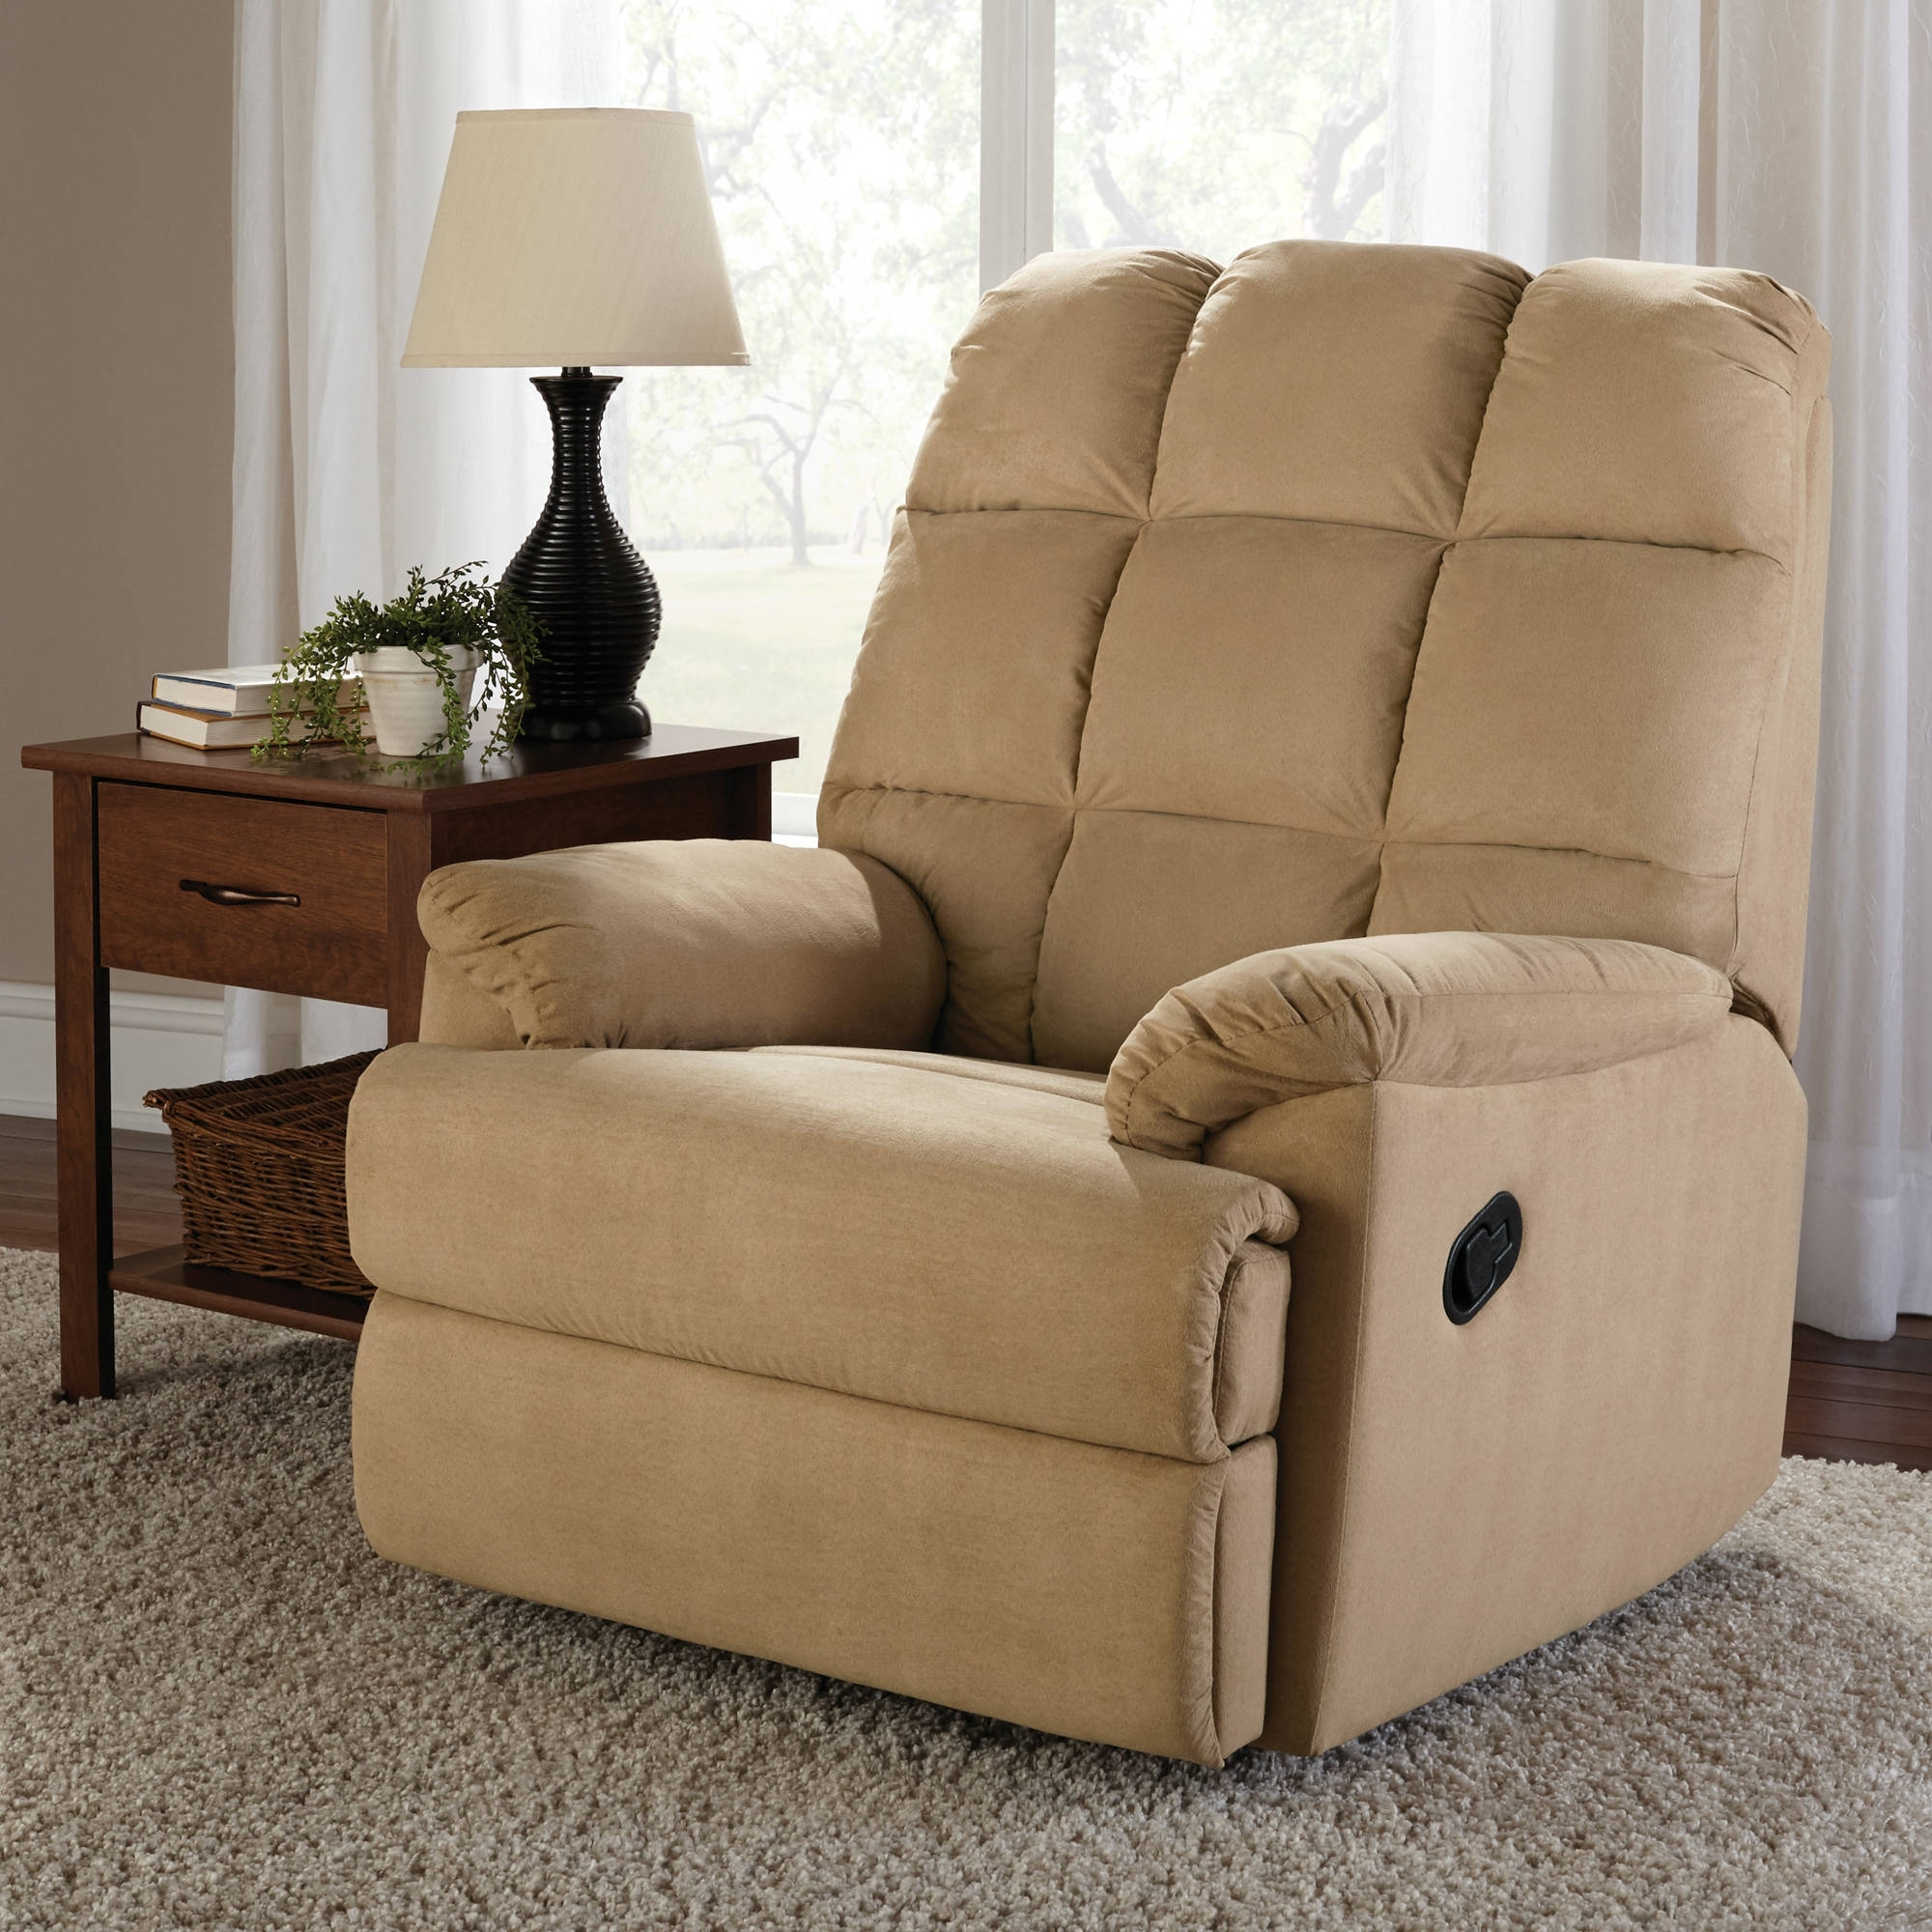 Most Popular Walmart Rocking Chairs Within Mainstays Microsuede Rocker Recliner – Walmart (View 8 of 15)